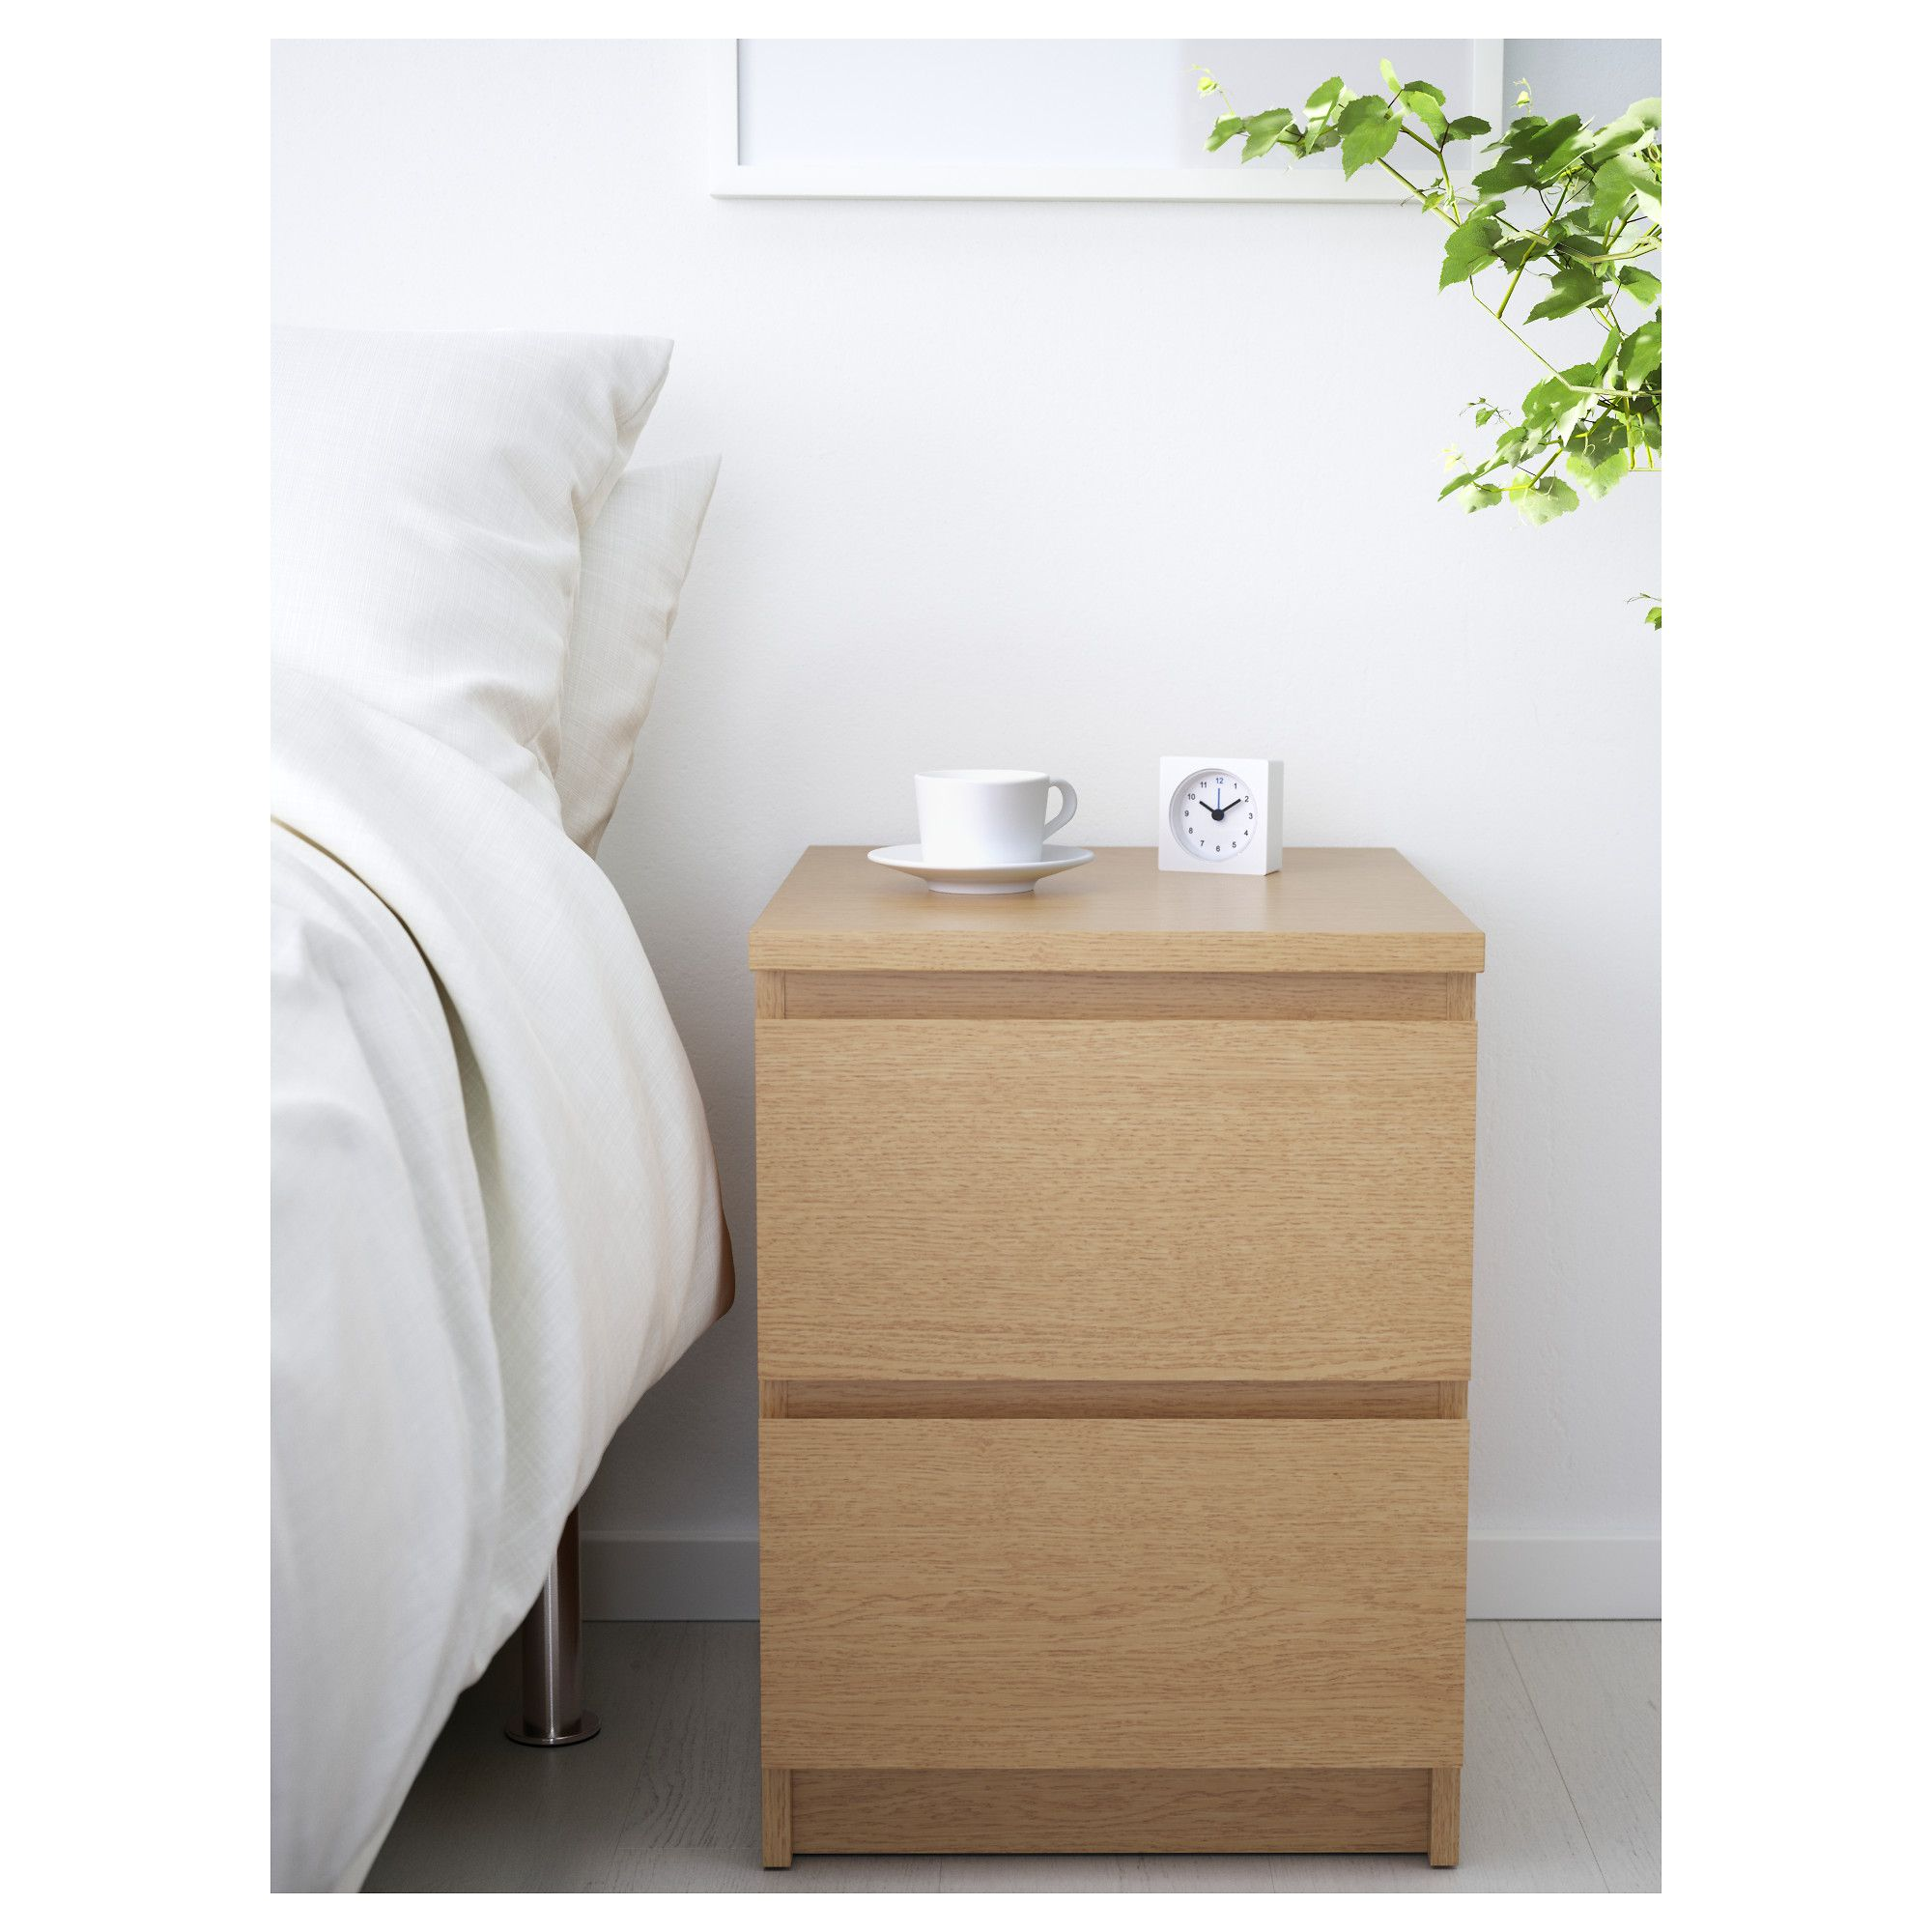 Malm Chest Of 2 Drawers Oak Veneer 40×55 Cm Ikea Malm Malm And  # Decoration Etagere Malm